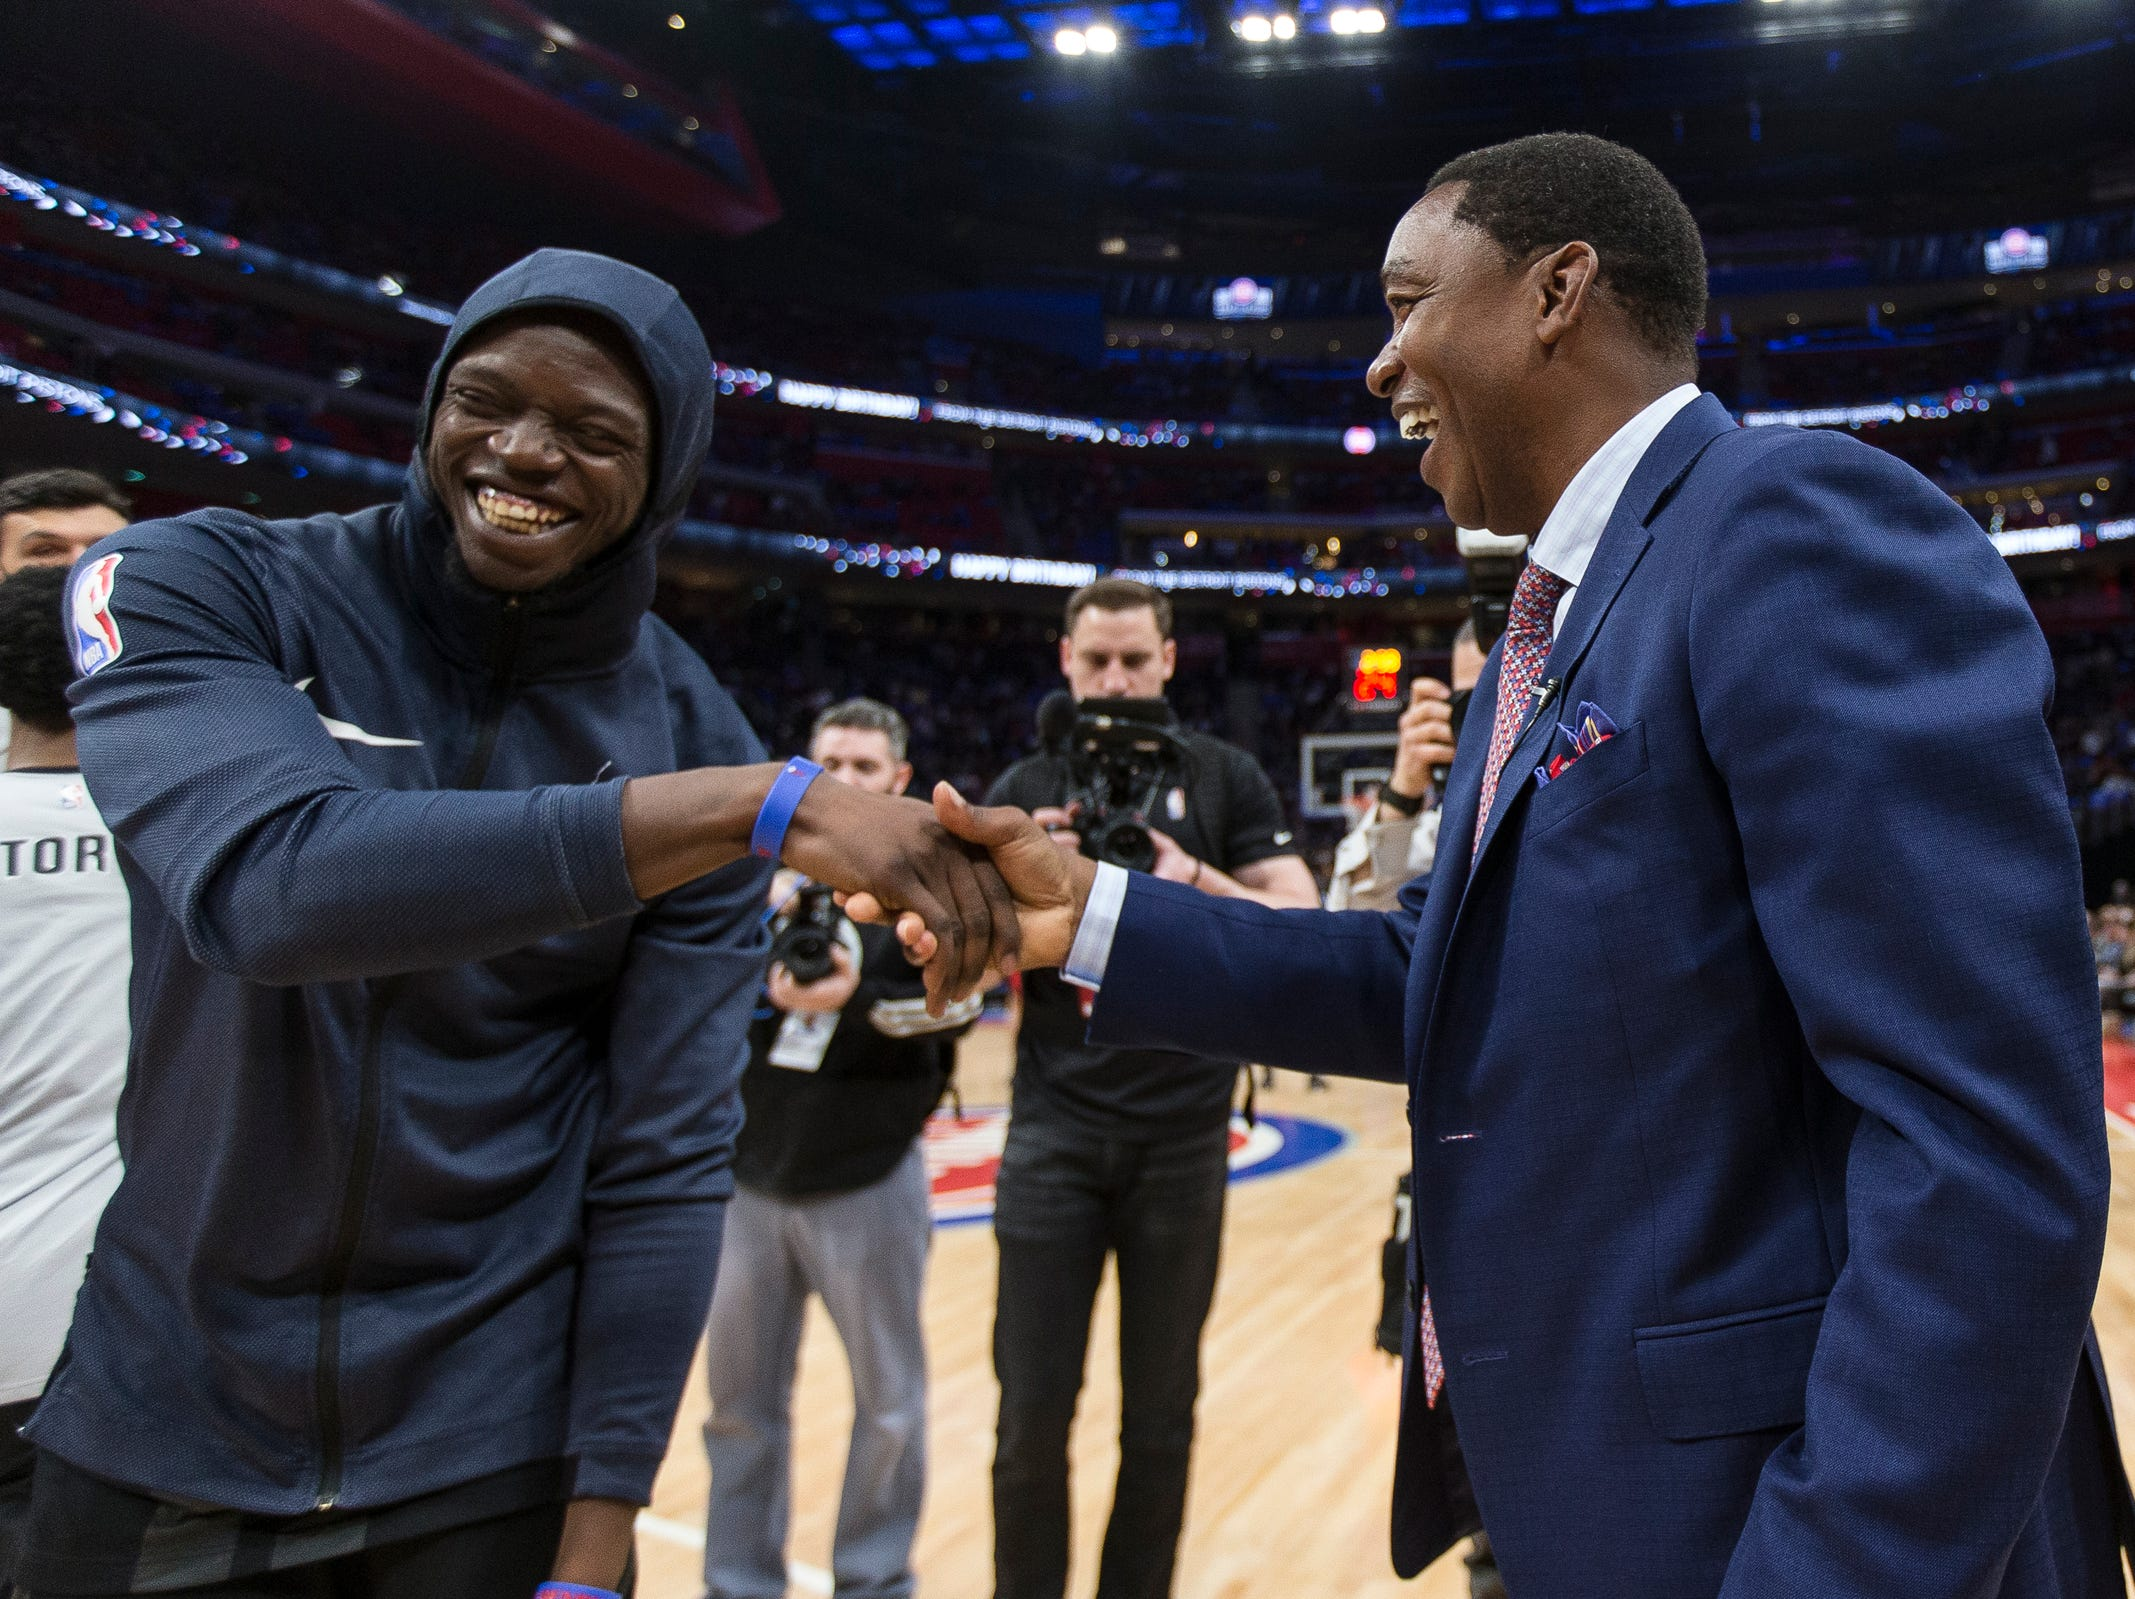 Isiah Thomas high fives guard Reggie Jackson during theÊcelebration for the Bad Boys' 30th anniversary of the 1989-90 back-to-back championships at the Little Caesars Arena in Detroit, Saturday, March 30, 2019.